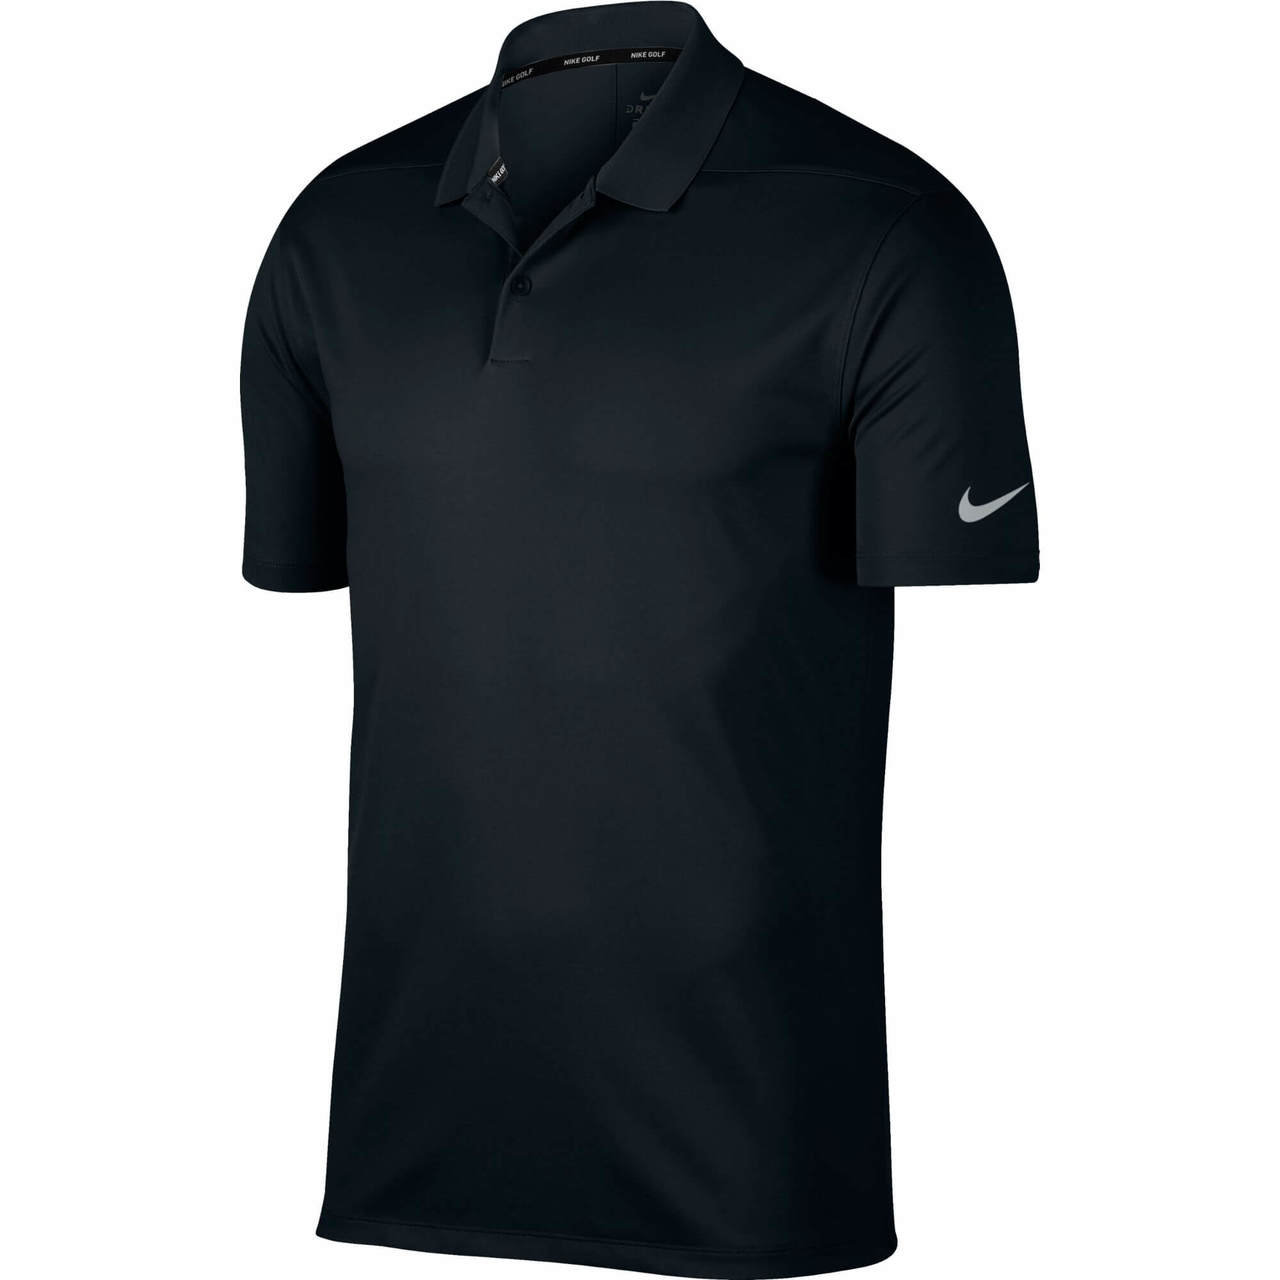 d8965b90 Nike Dry Victory Solid Men's Golf Polo. Nike. 54.99. SKU: 891881; Gift  wrapping: Options available. Black